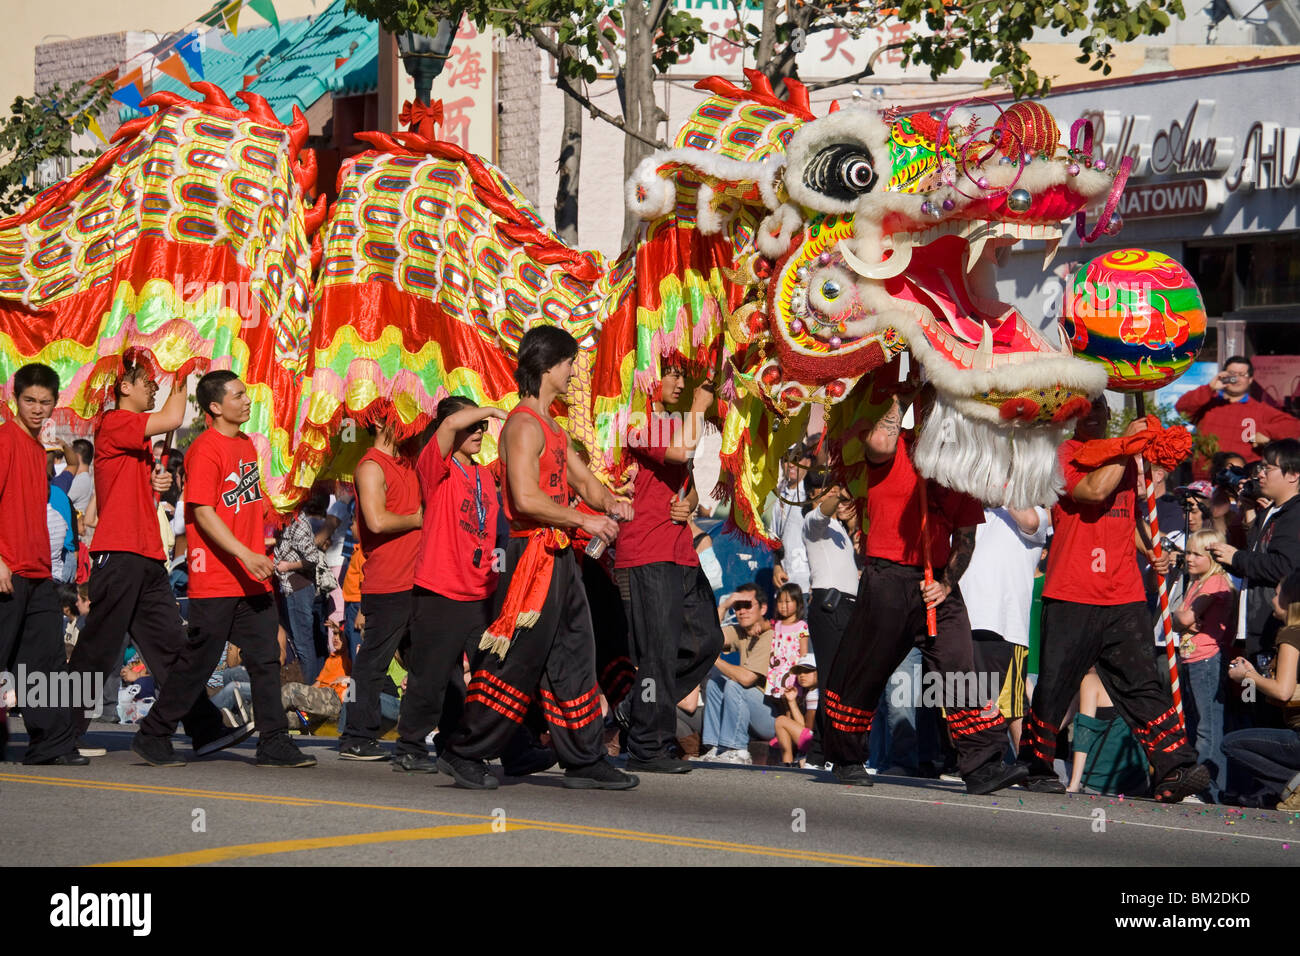 Golden Dragon Parade, Nuovo Anno Cinese Festival, Chinatown, Los Angeles, California, Stati Uniti d'America Immagini Stock